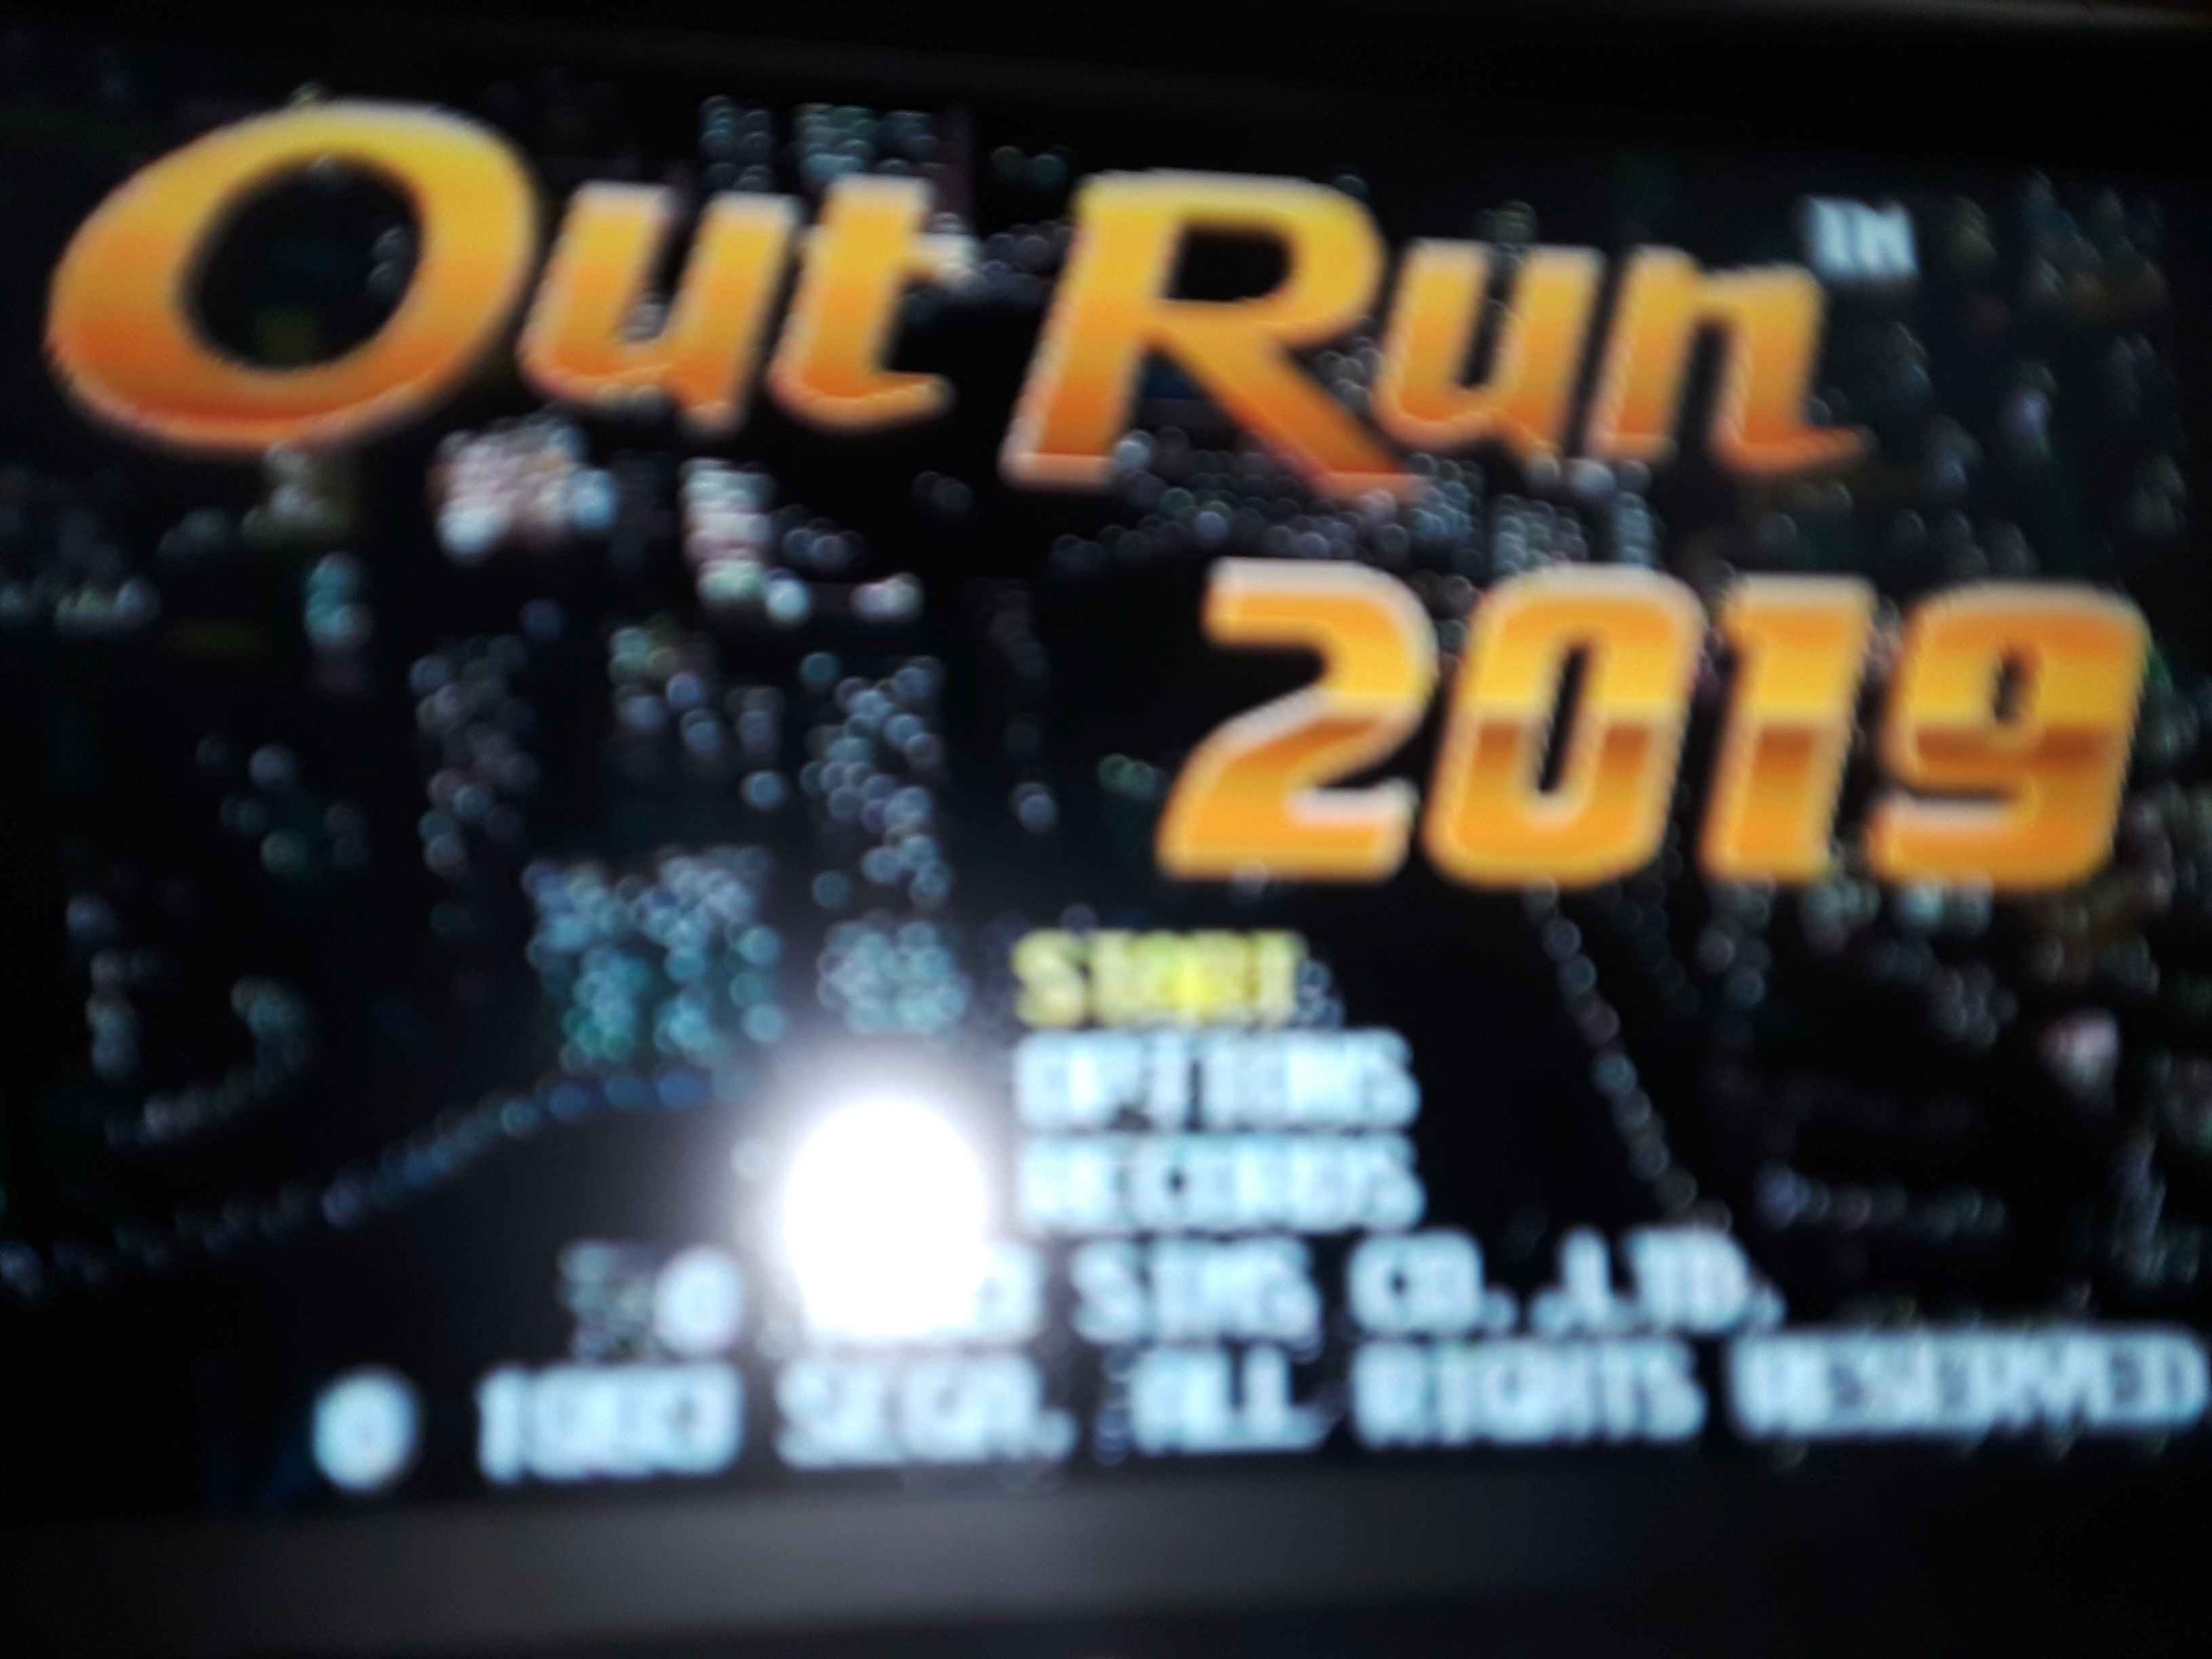 JML101582: Outrun 2019 [Stage 1] (Sega Genesis / MegaDrive Emulated) 0:04:52.4 points on 2019-03-25 18:14:55